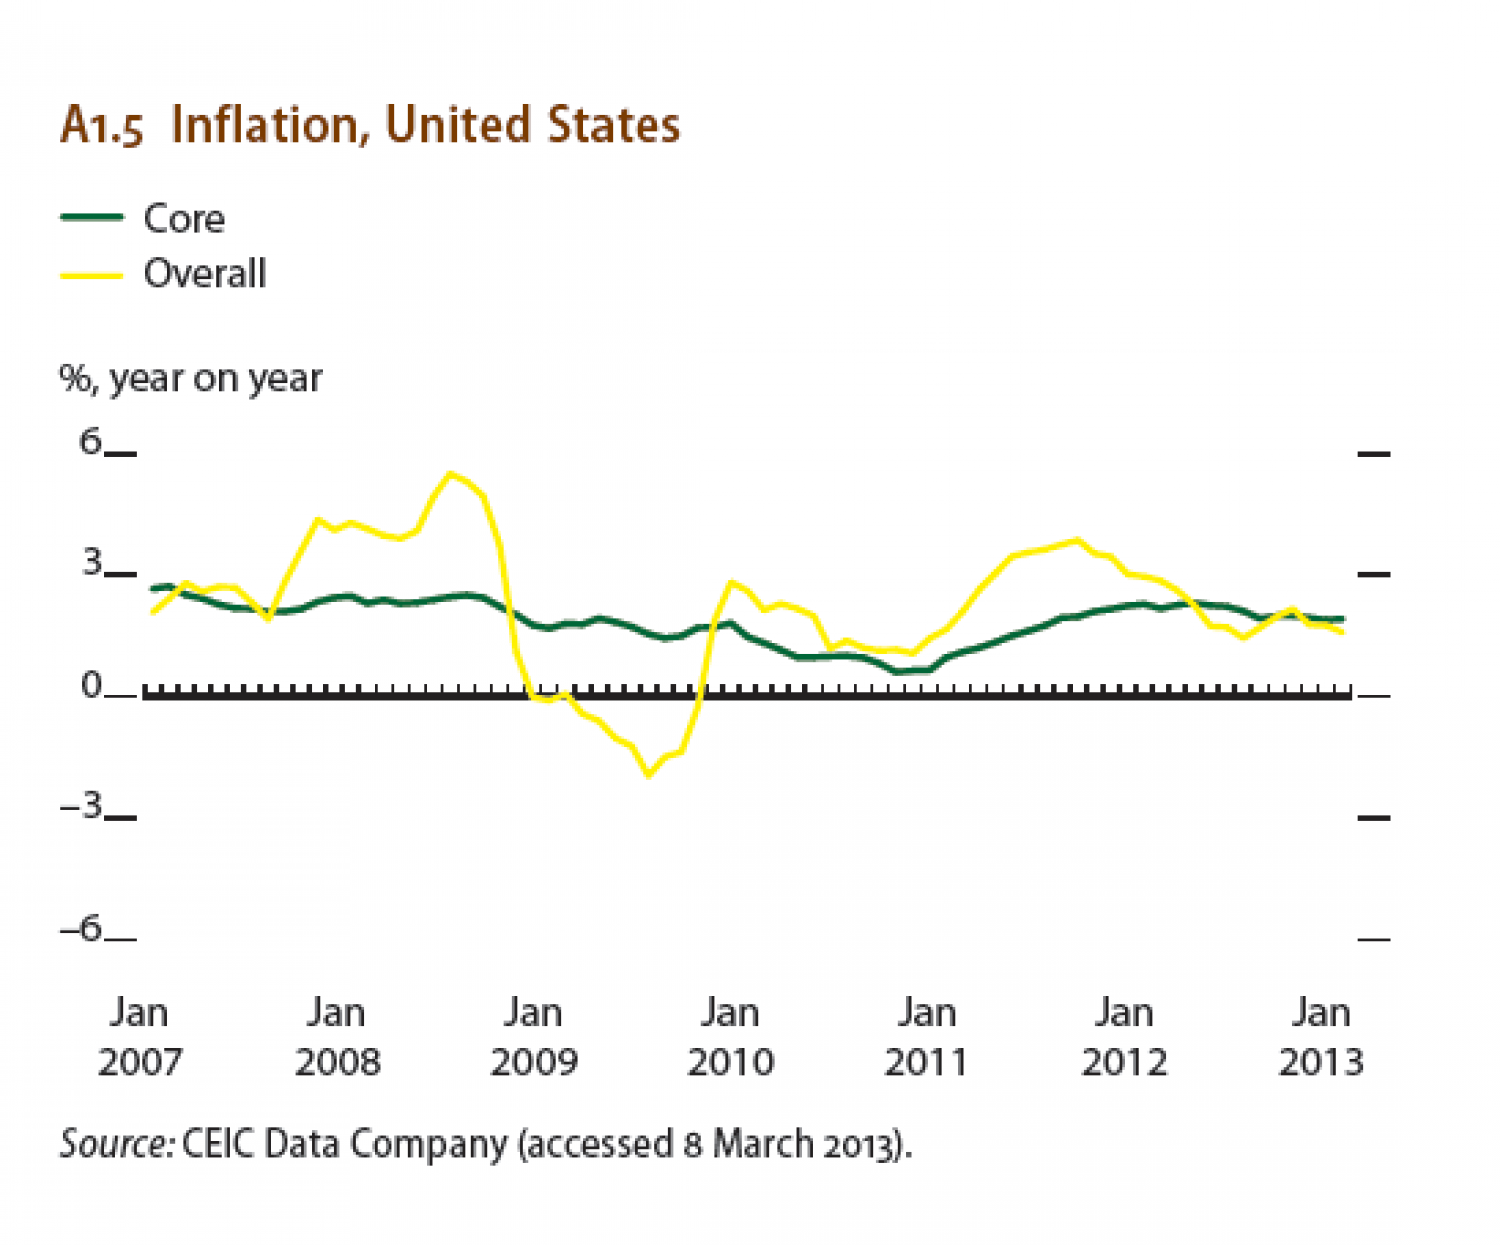 Inflation, United States Infographic